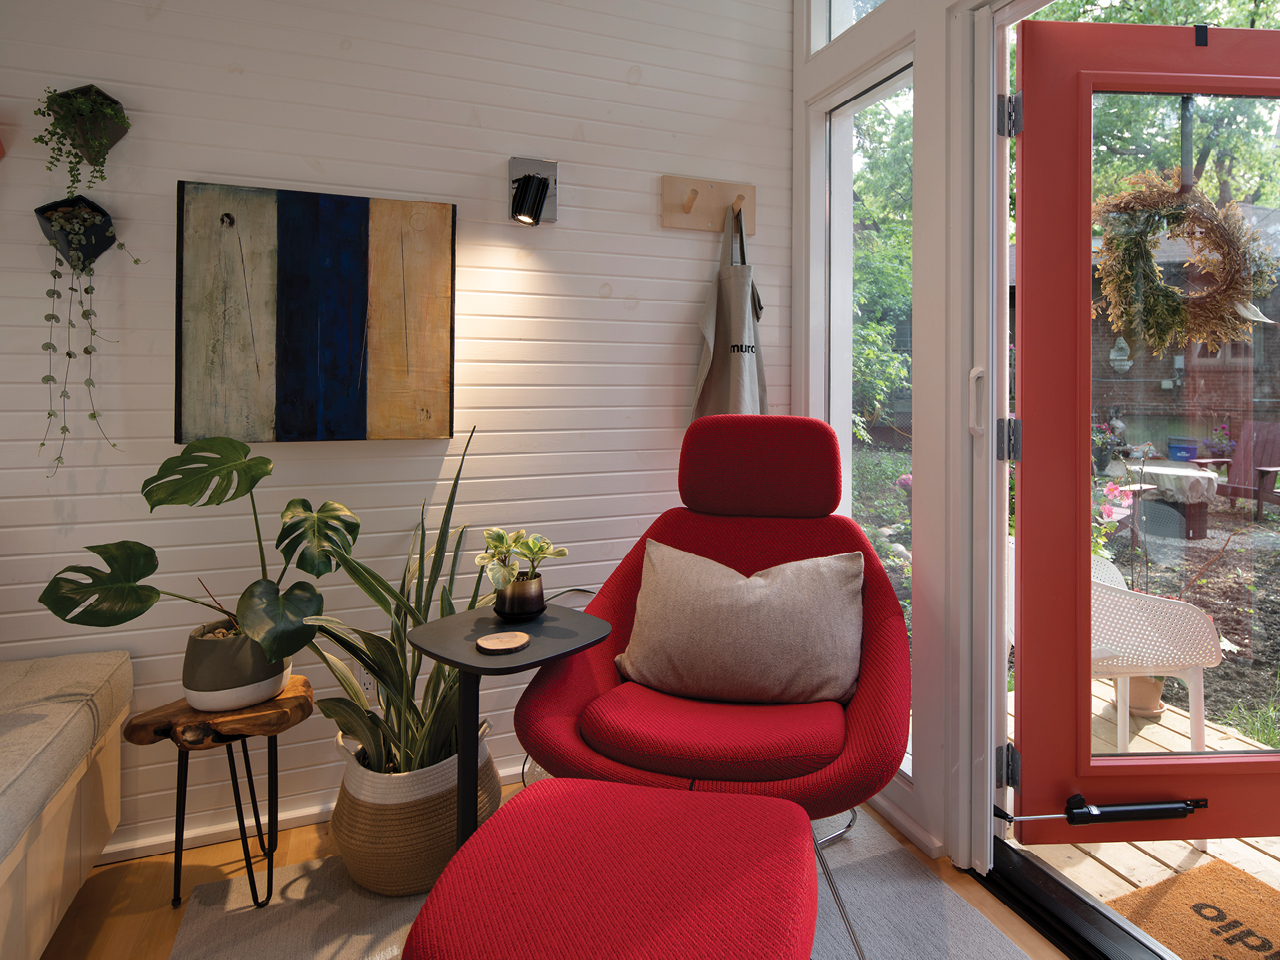 Susan Chang's reading corner in her Toronto backyard shed office.